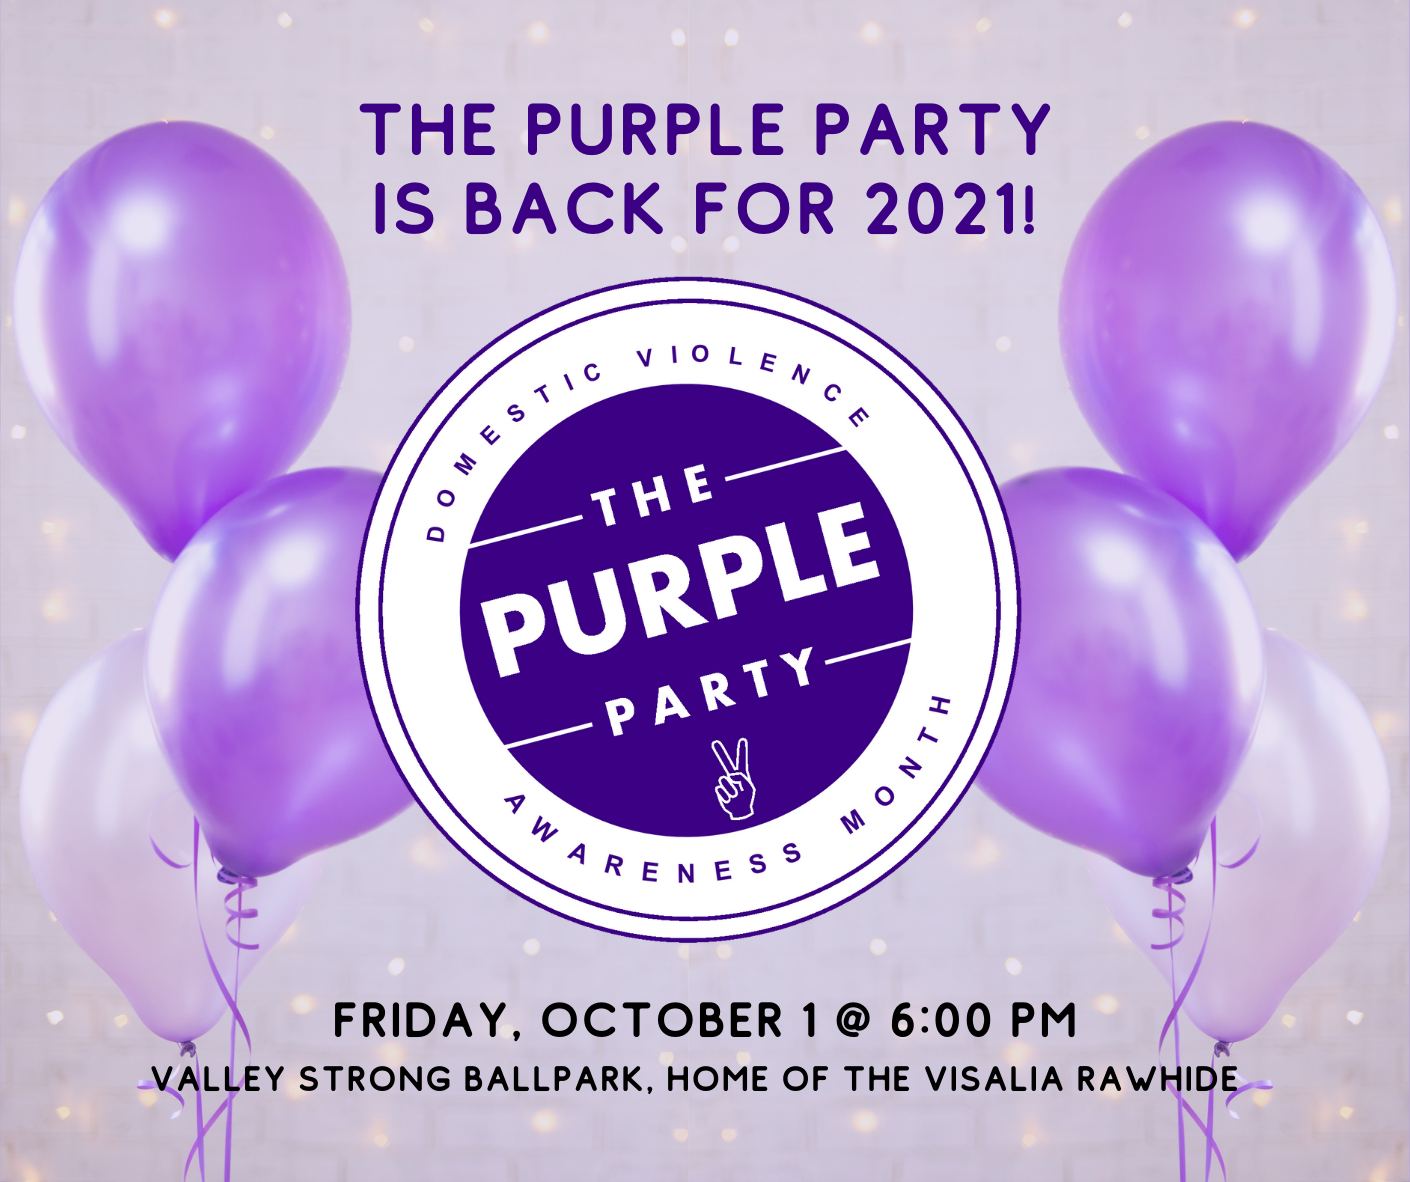 The Purple Party is back!